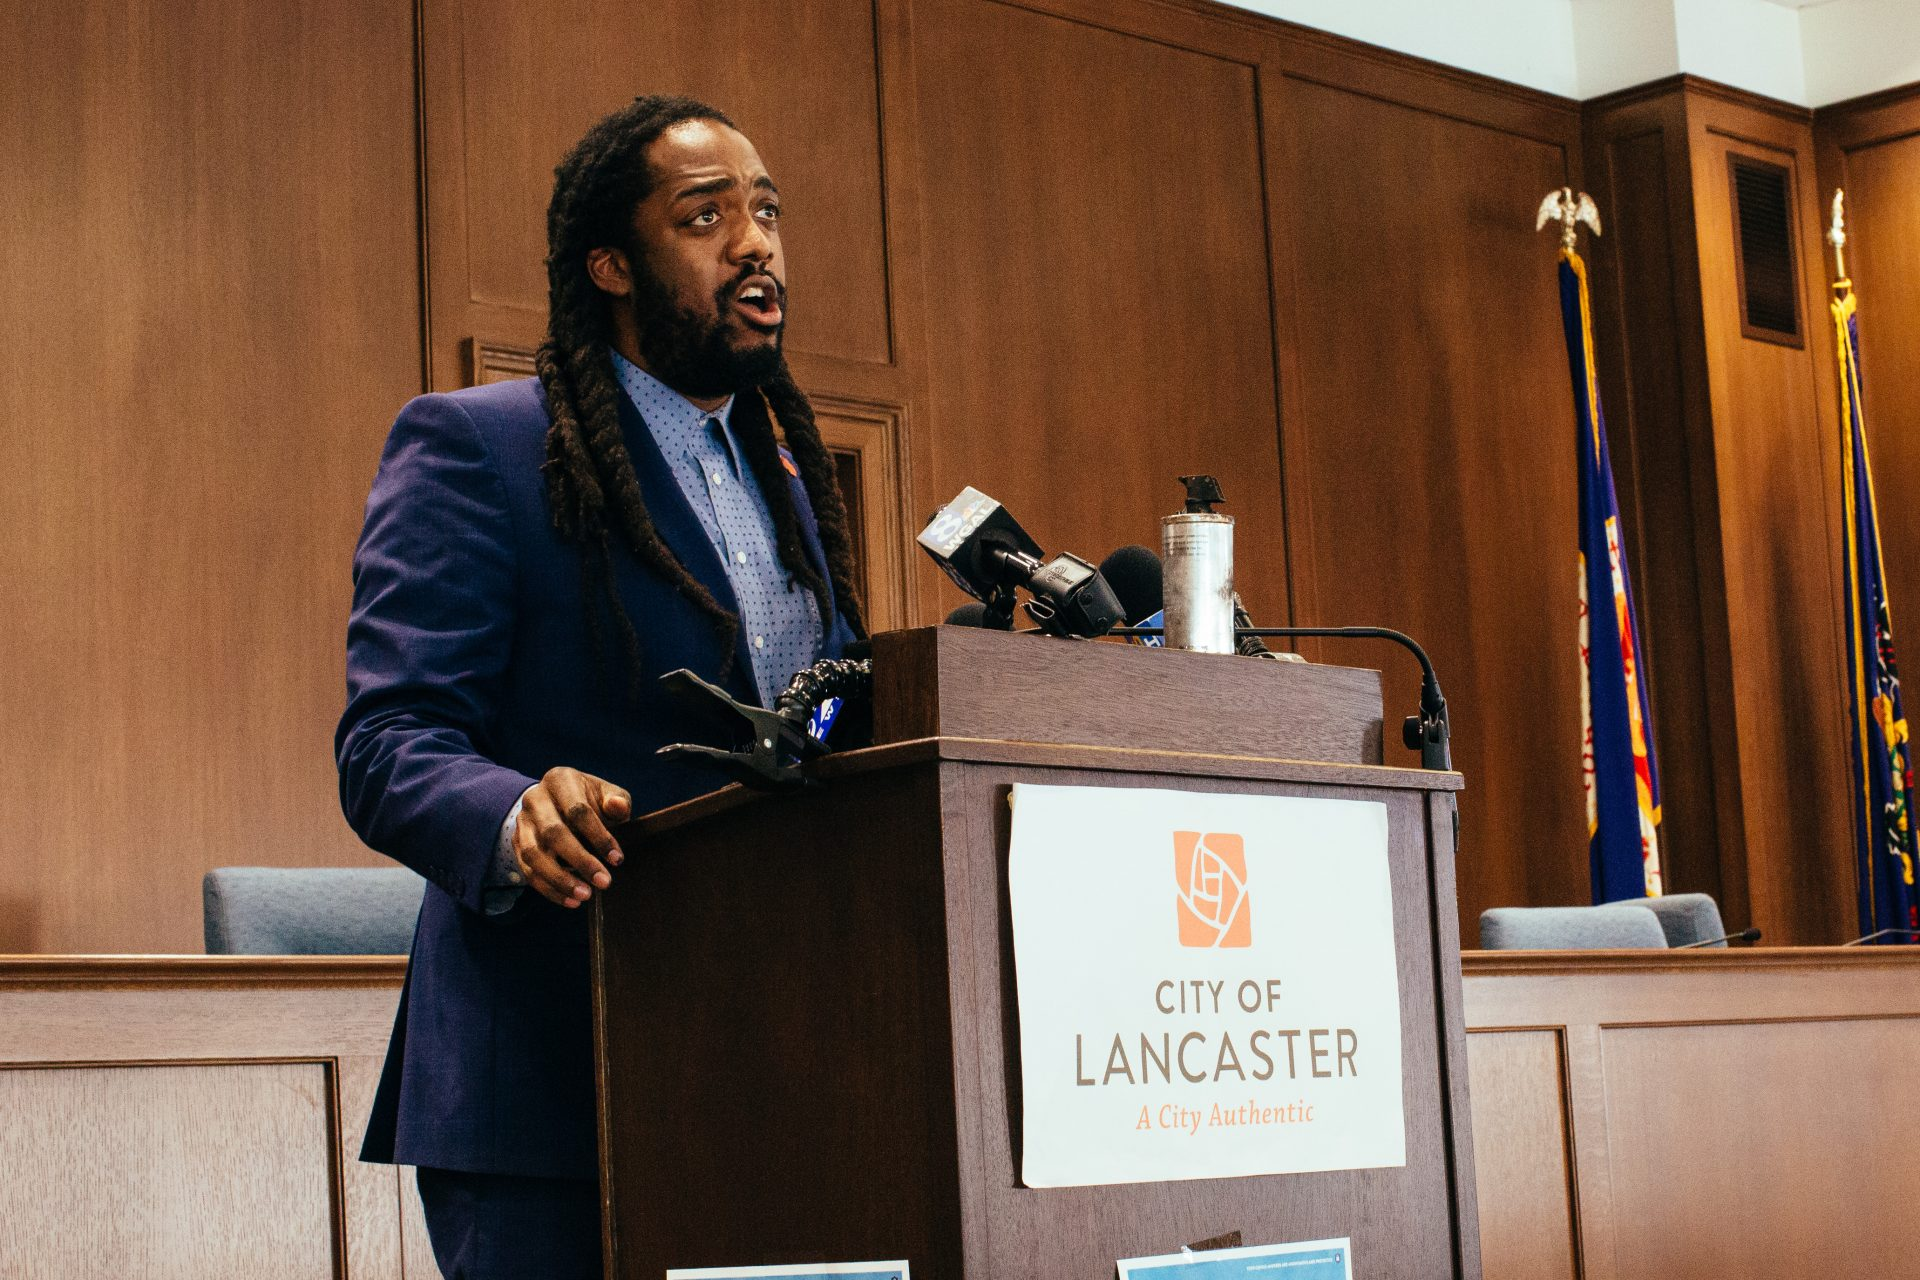 Lancaster City Council president Ismail Smith-Wade El speaks at a press conference following the shooting, protests and destruction in Lancaster, Pa., on September 14, 2020.